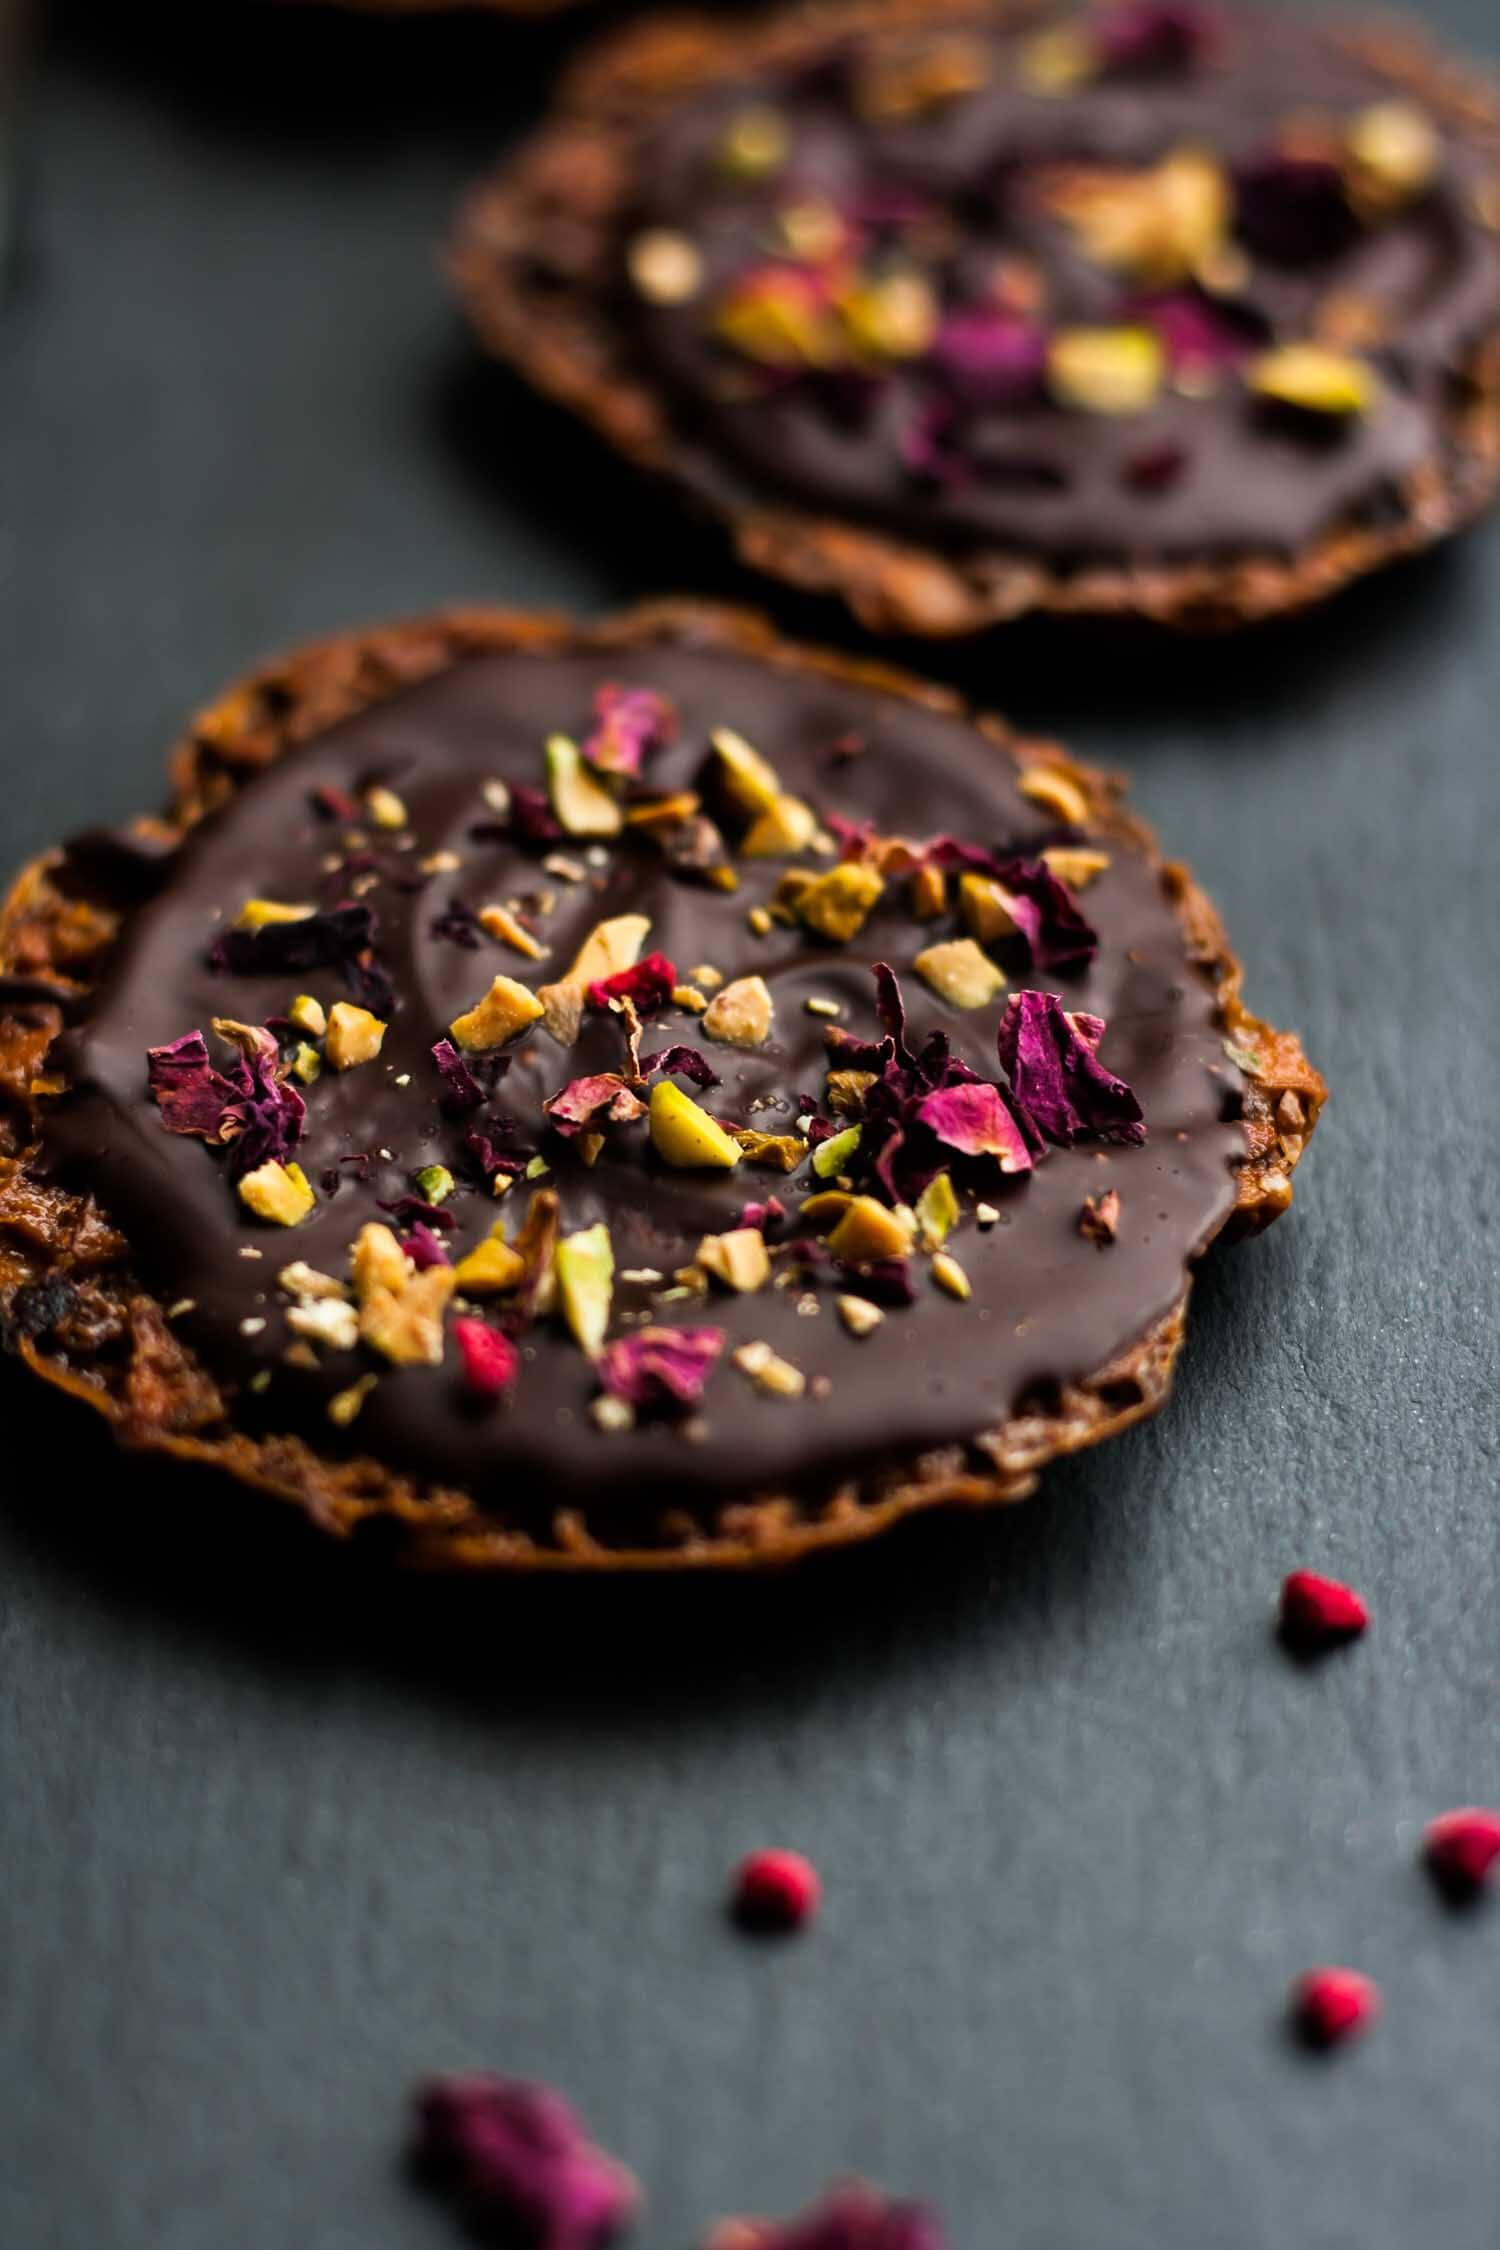 Raspberry Pistachio Almond Florentines - why not get baking and make these indulgent treats for Valentine's Day? | eatloveeats.com